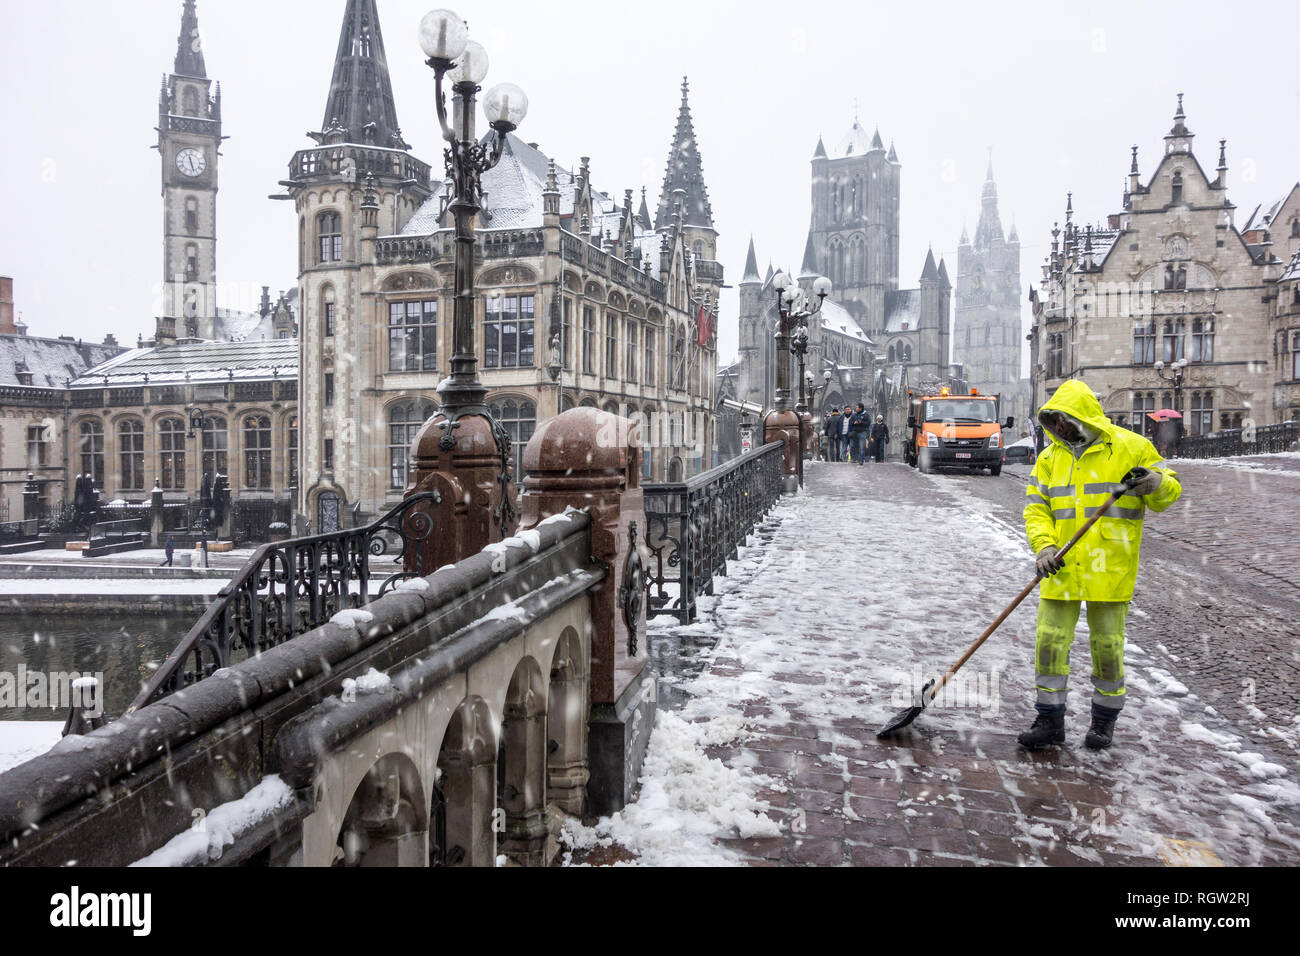 City worker cleaning pavement during sleet / snow shower in winter in the city Ghent, East Flanders, Belgium - Stock Image